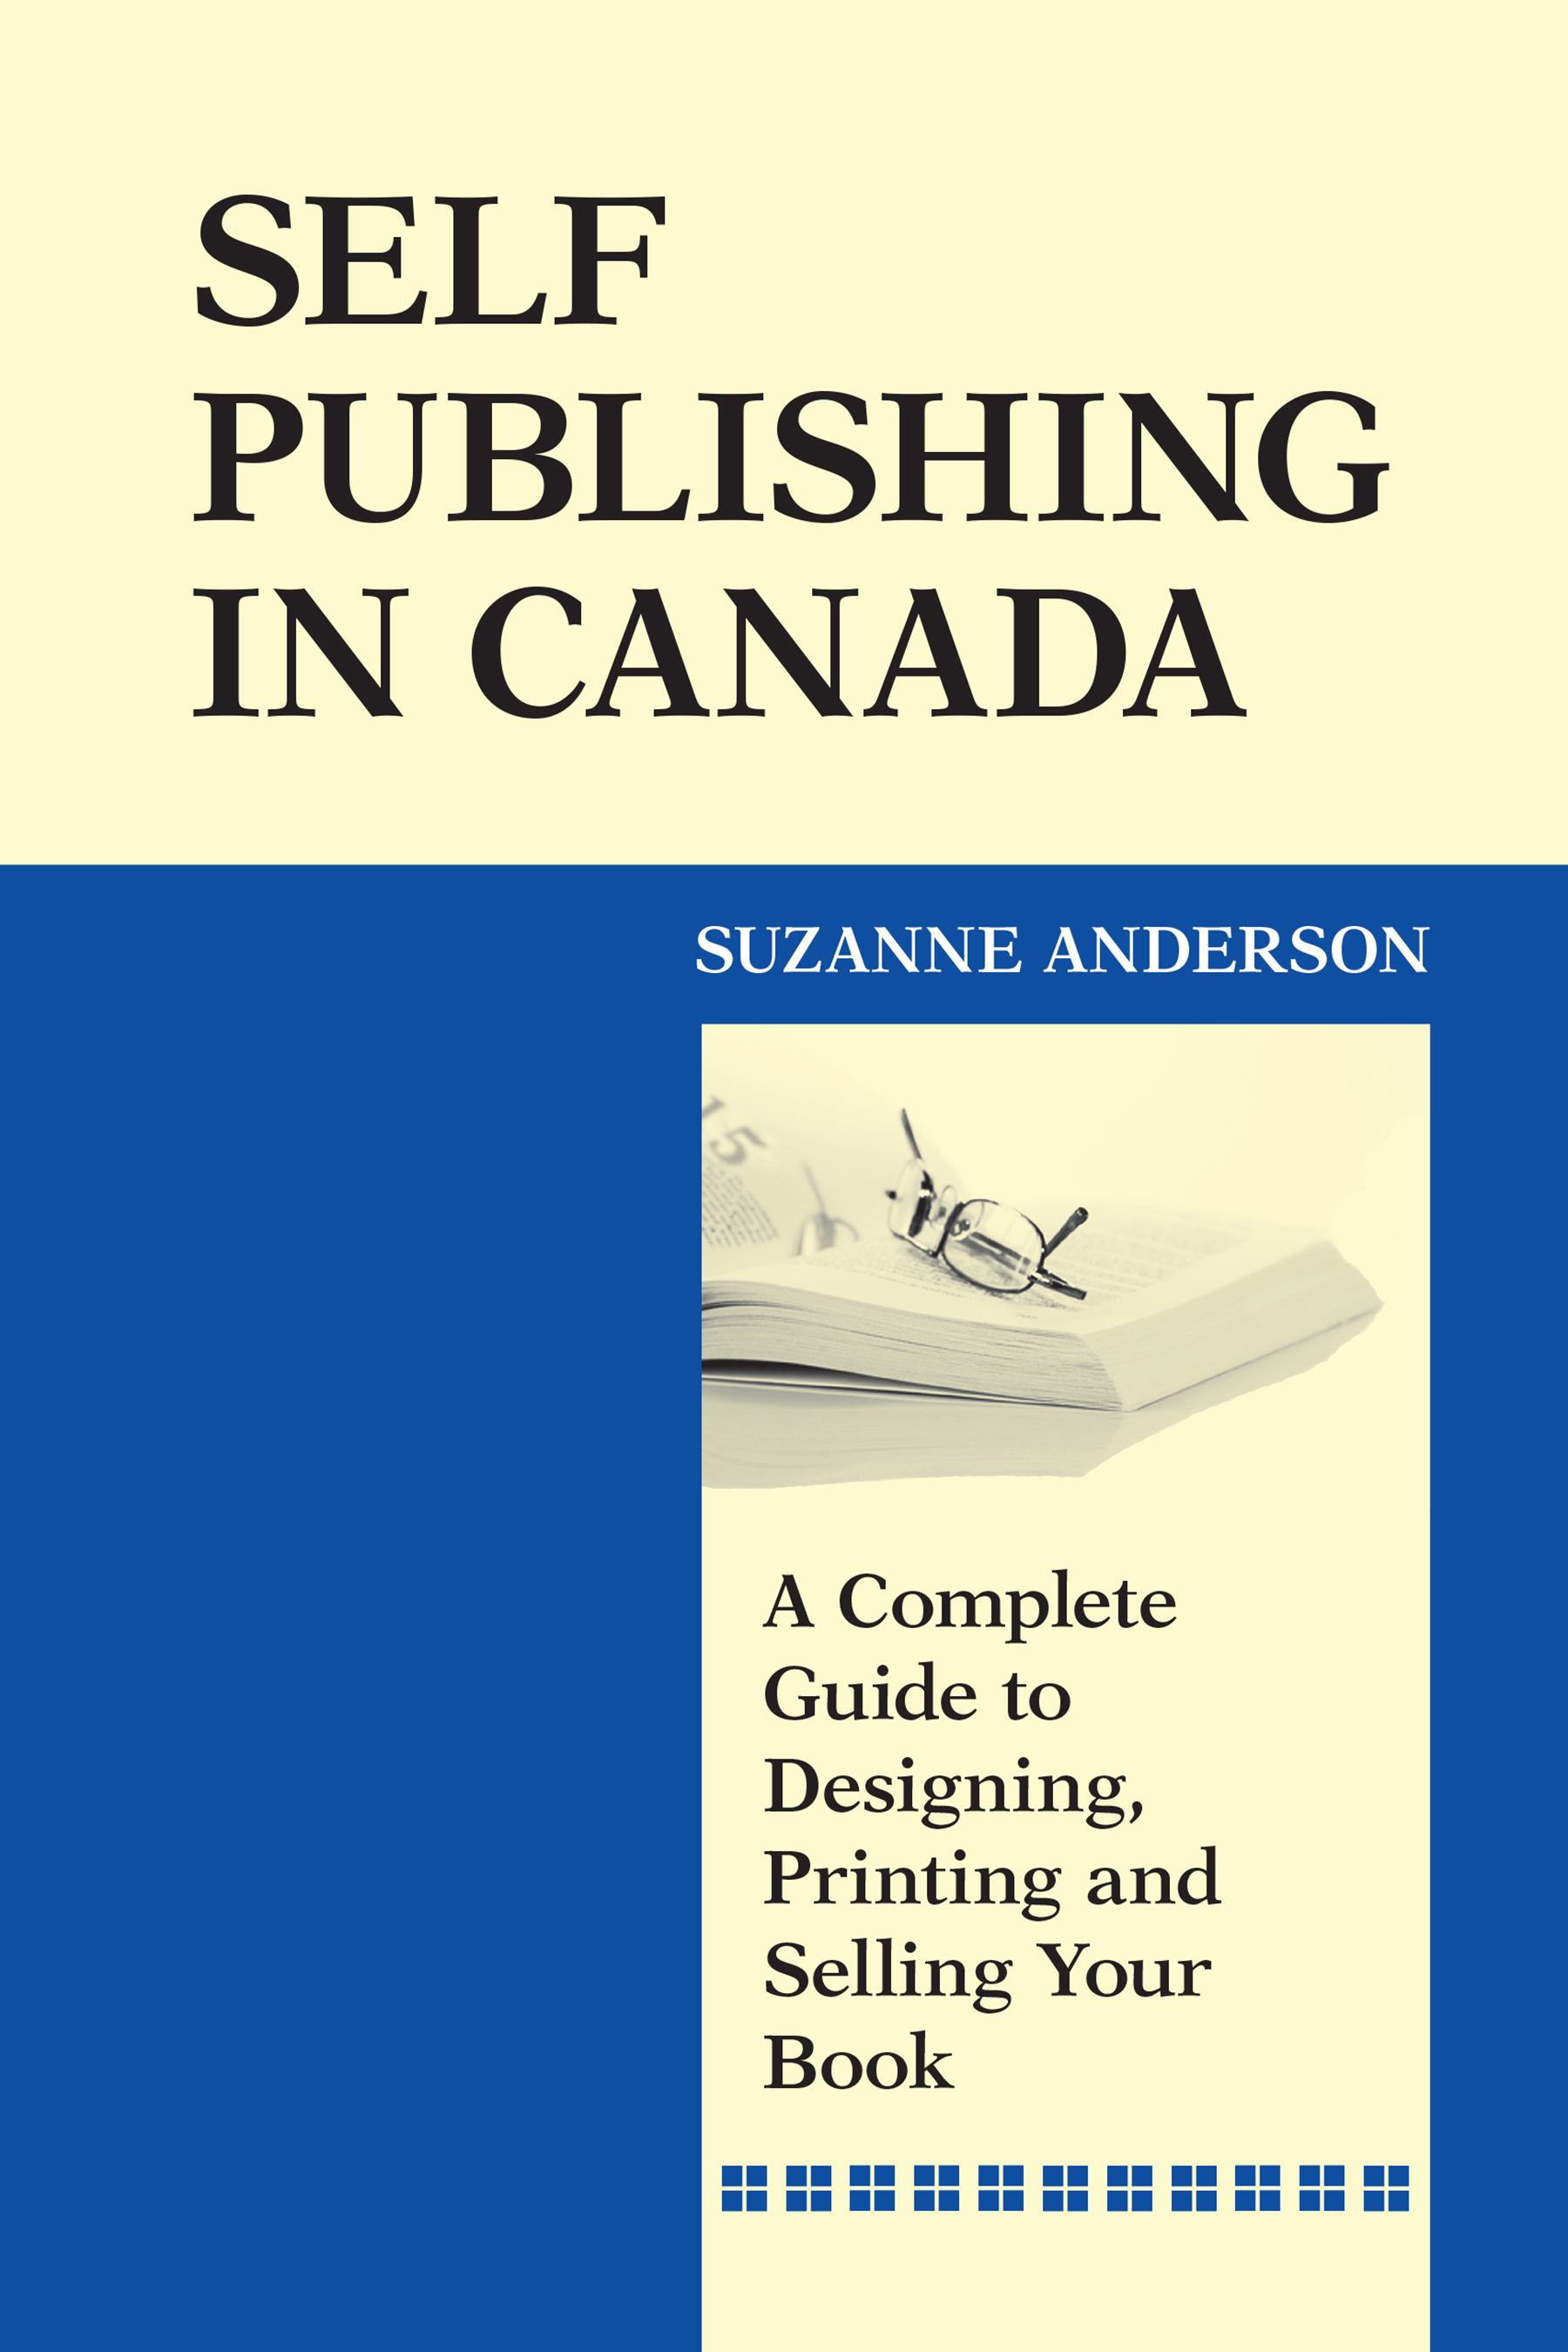 Self-Publishing In Canada by Suzanne Anderson